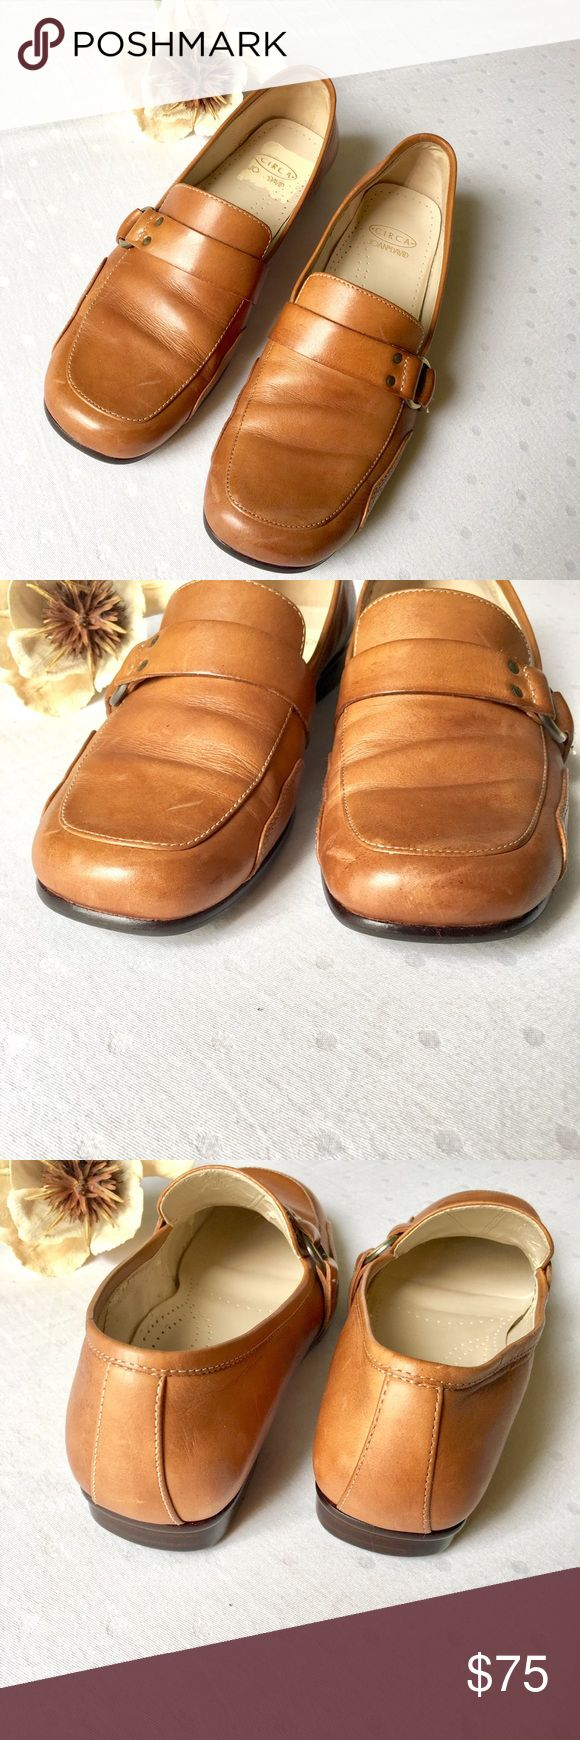 Circa Joan & David Leather Penny Loafers Size 6.5M Circa Joan & David Leather Penny Loafers Size 6.5M. Beautiful rich camel color leather. Great condition--just some normal wear / scuffs on the leather as shown in the pics. Leather uppers AND leather soles! Cushioned soles for max comfort! Rubber outer soles have tred! The square spot on the inside of the sole is where the tag was removed from the foam (not sticky though). Joan & David Shoes Flats & Loafers